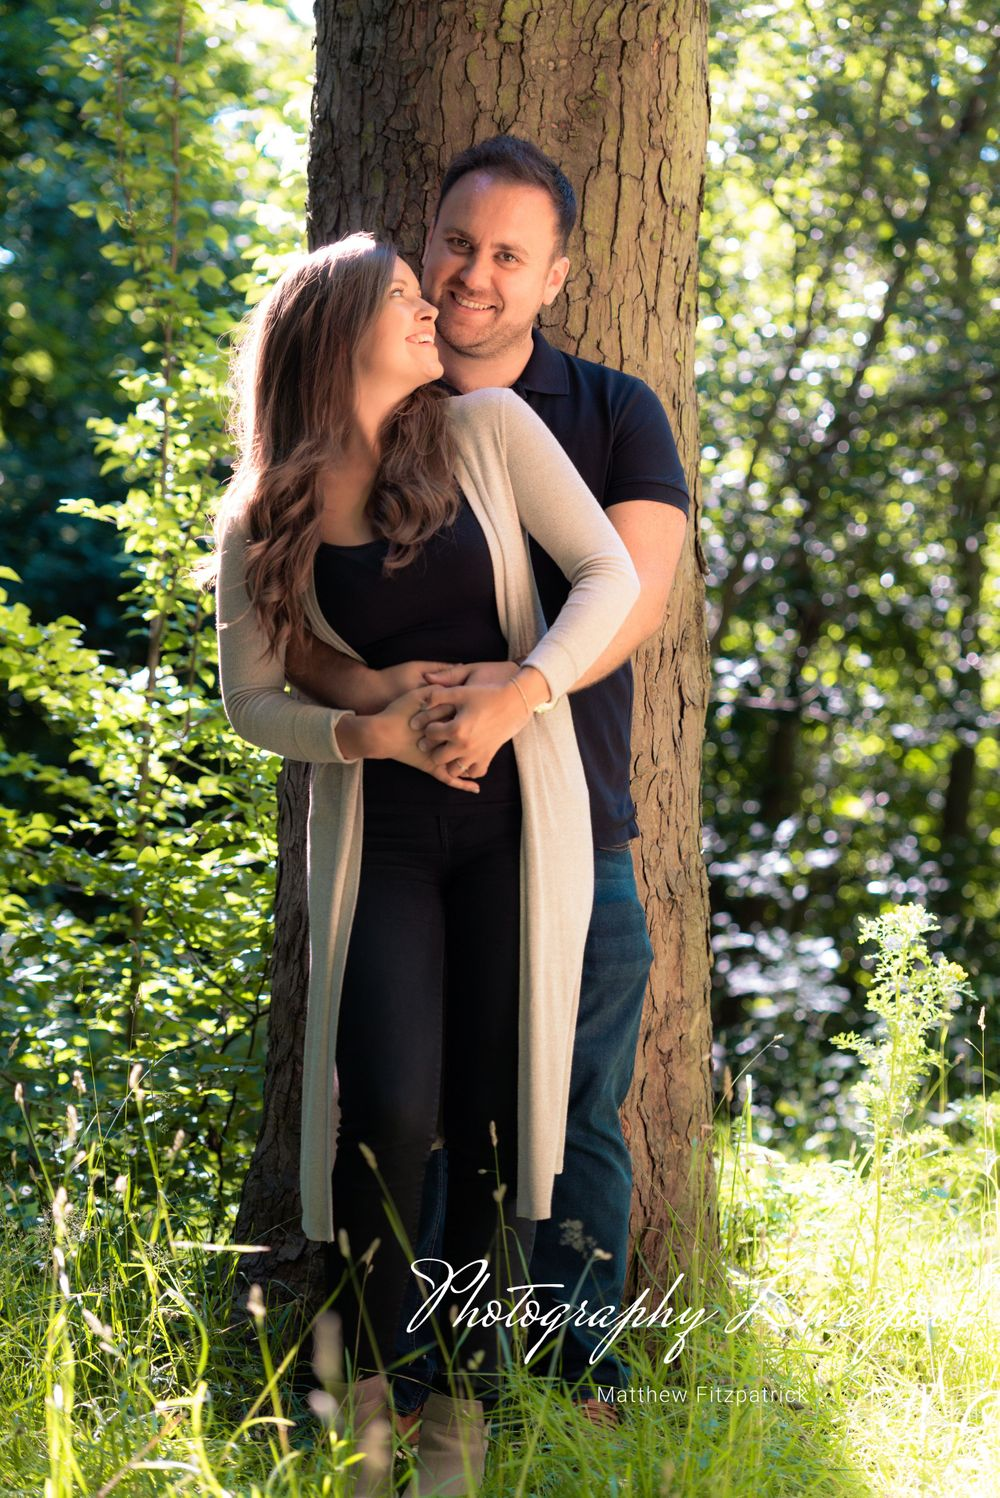 Naturally posed engagement photography at Liverpool Sefton Park by Photography Liverpool Wedding Photographer